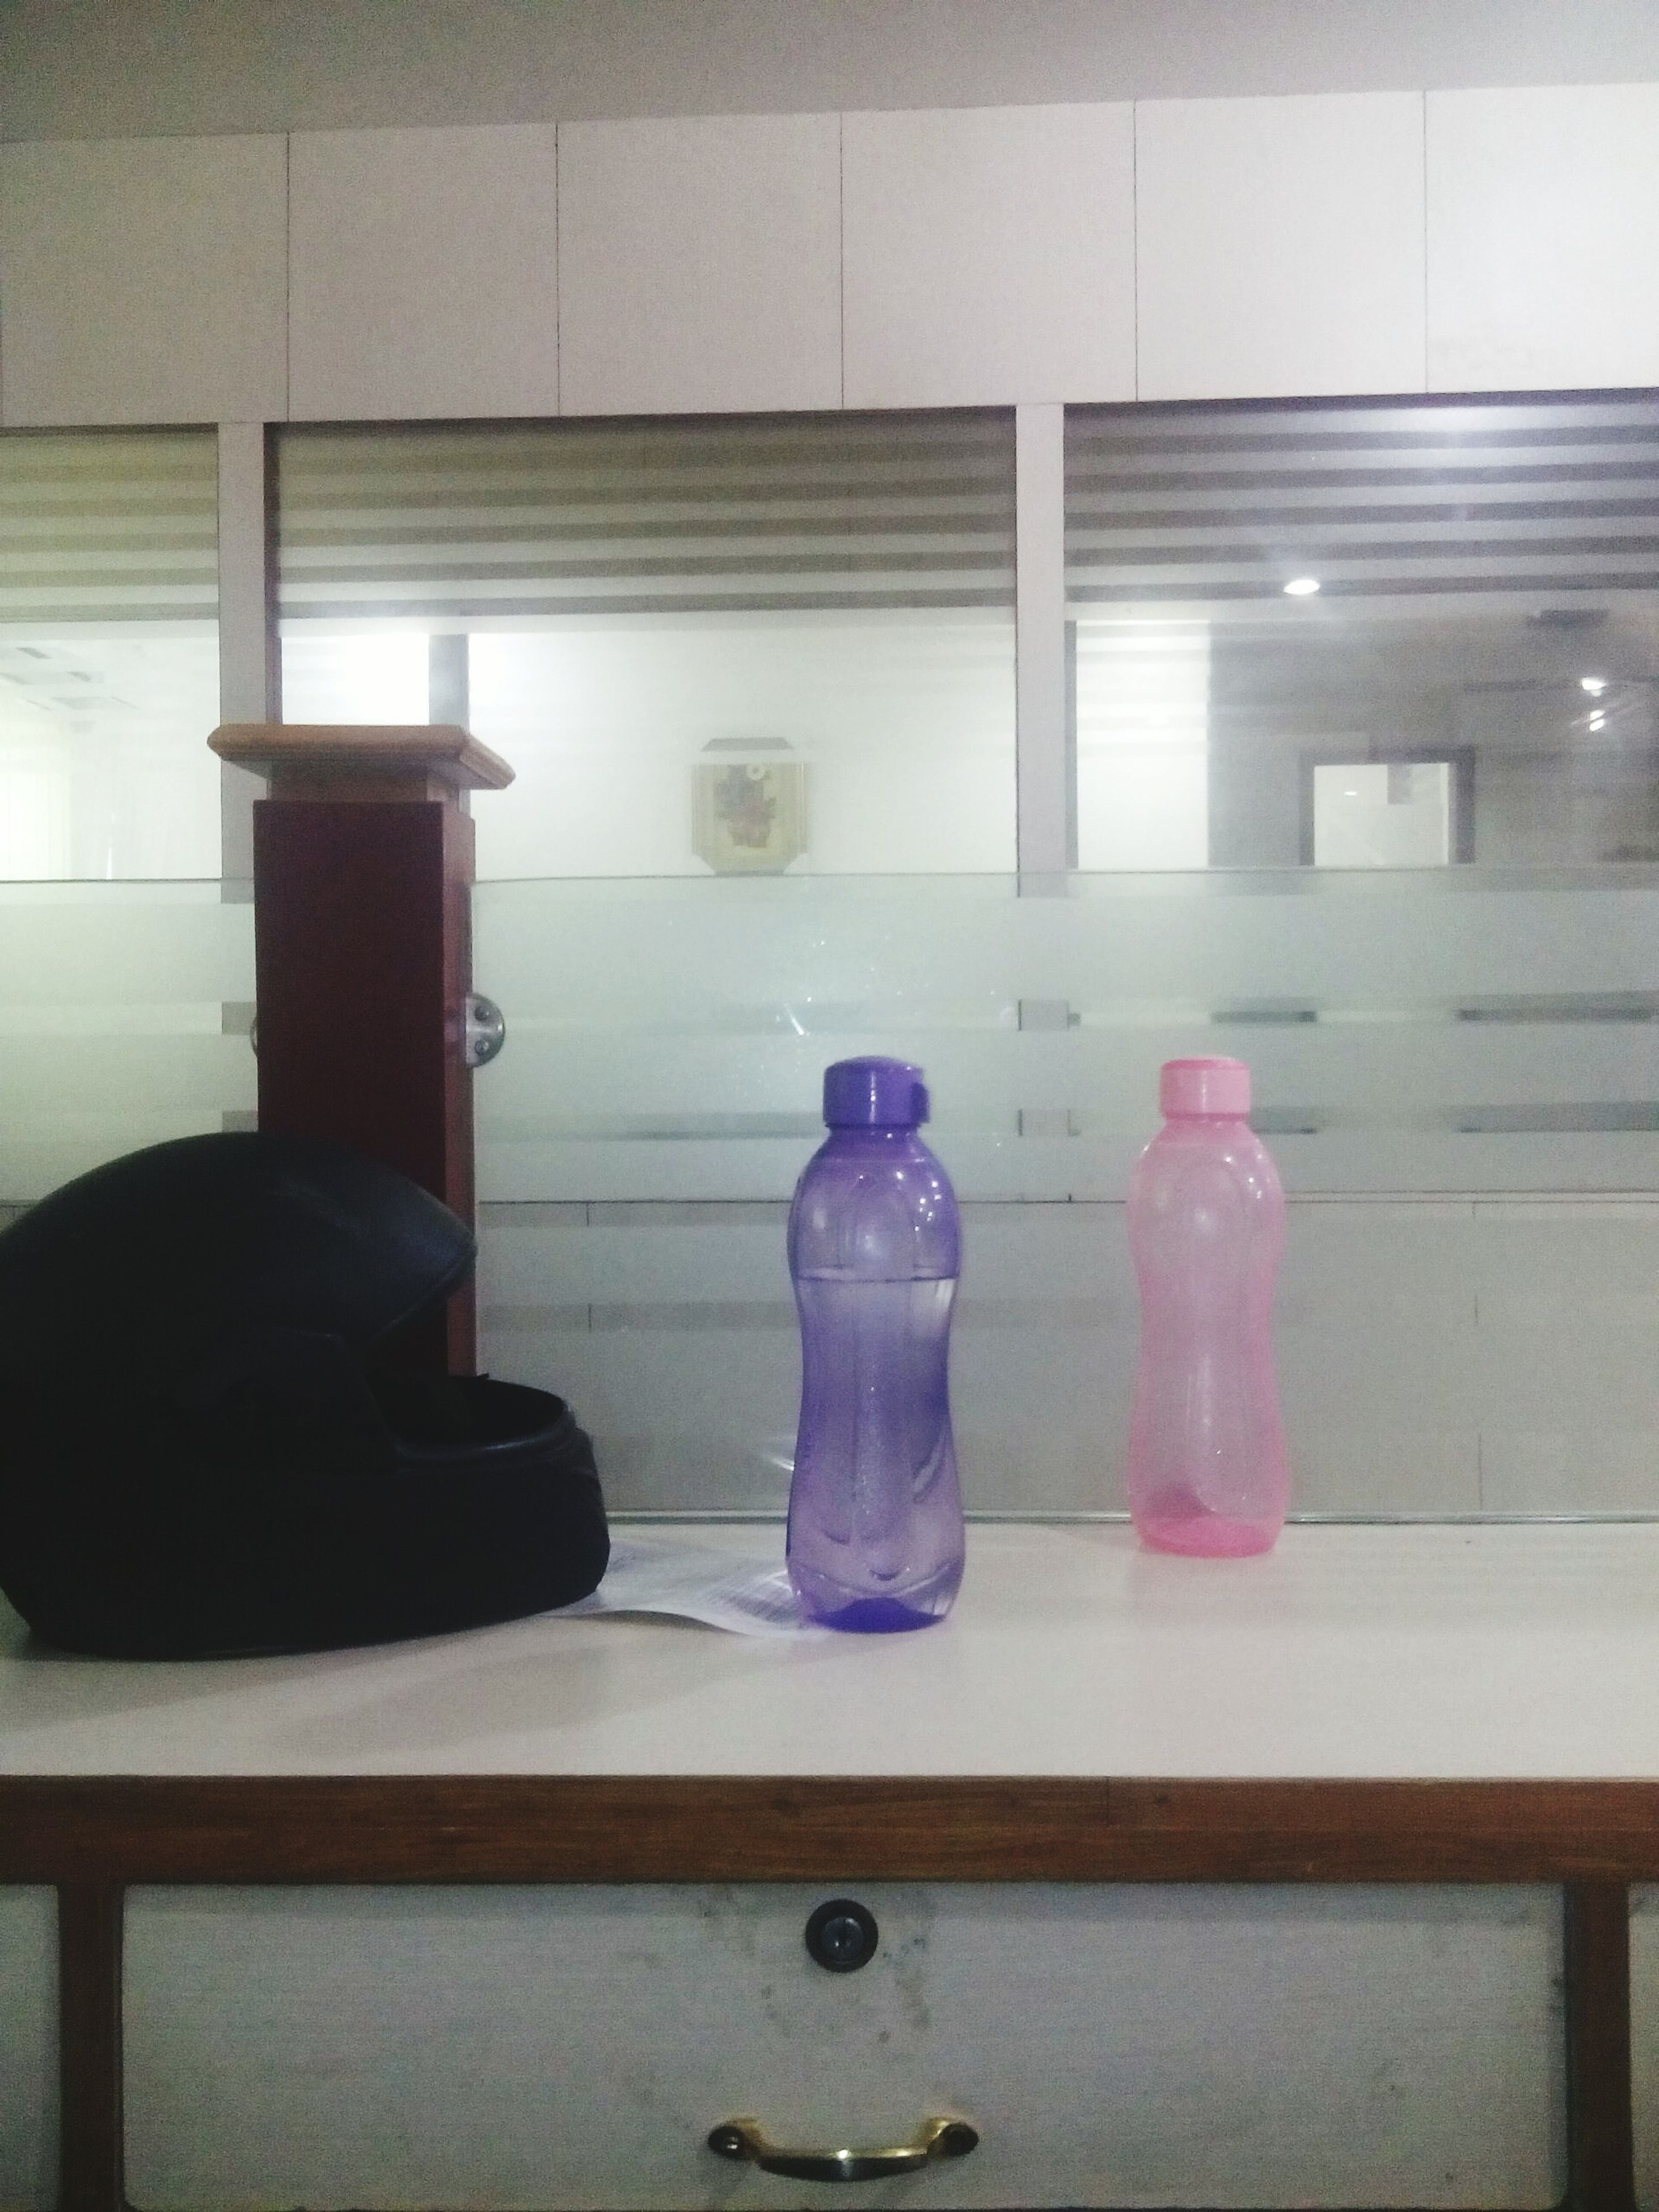 indoors, table, home interior, glass - material, still life, reflection, bottle, wall - building feature, illuminated, lighting equipment, domestic room, transparent, vase, window, no people, absence, chair, wall, flooring, empty